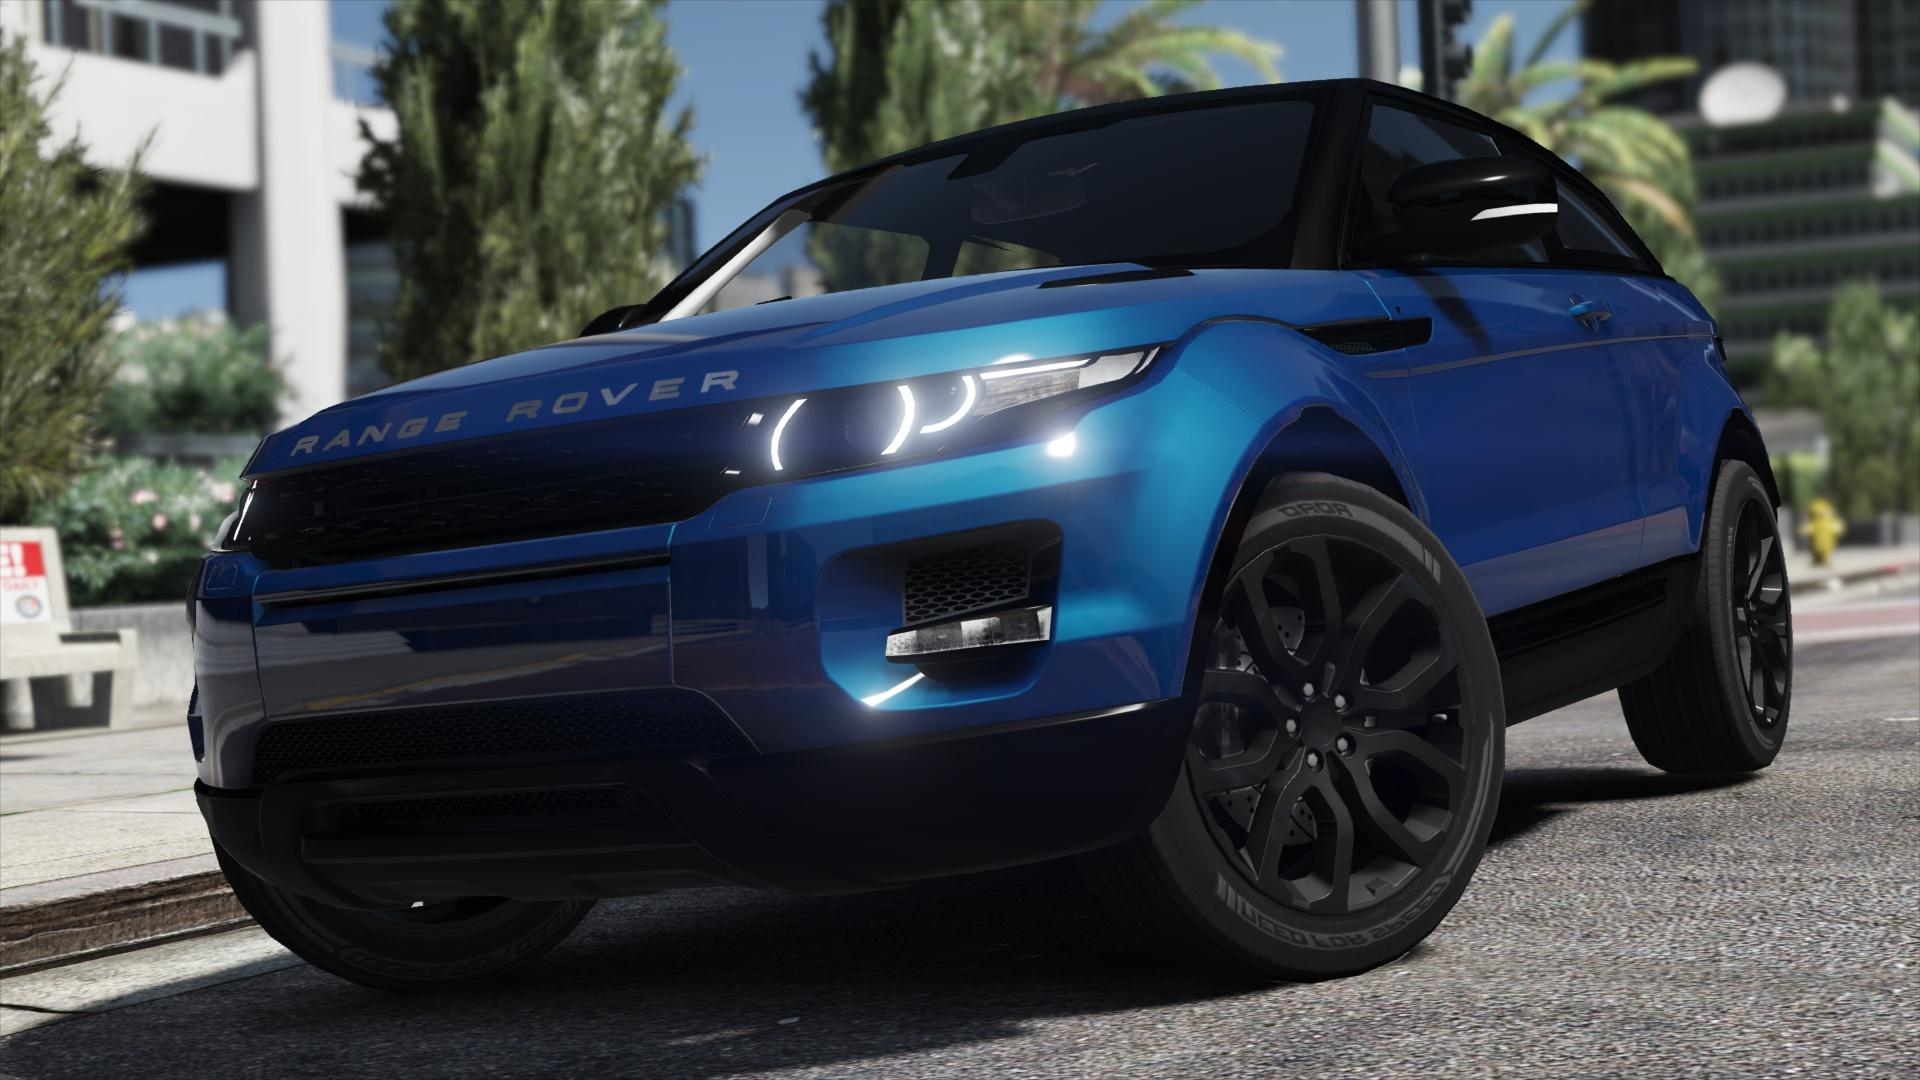 range rover evoque add on replace tuning template. Black Bedroom Furniture Sets. Home Design Ideas